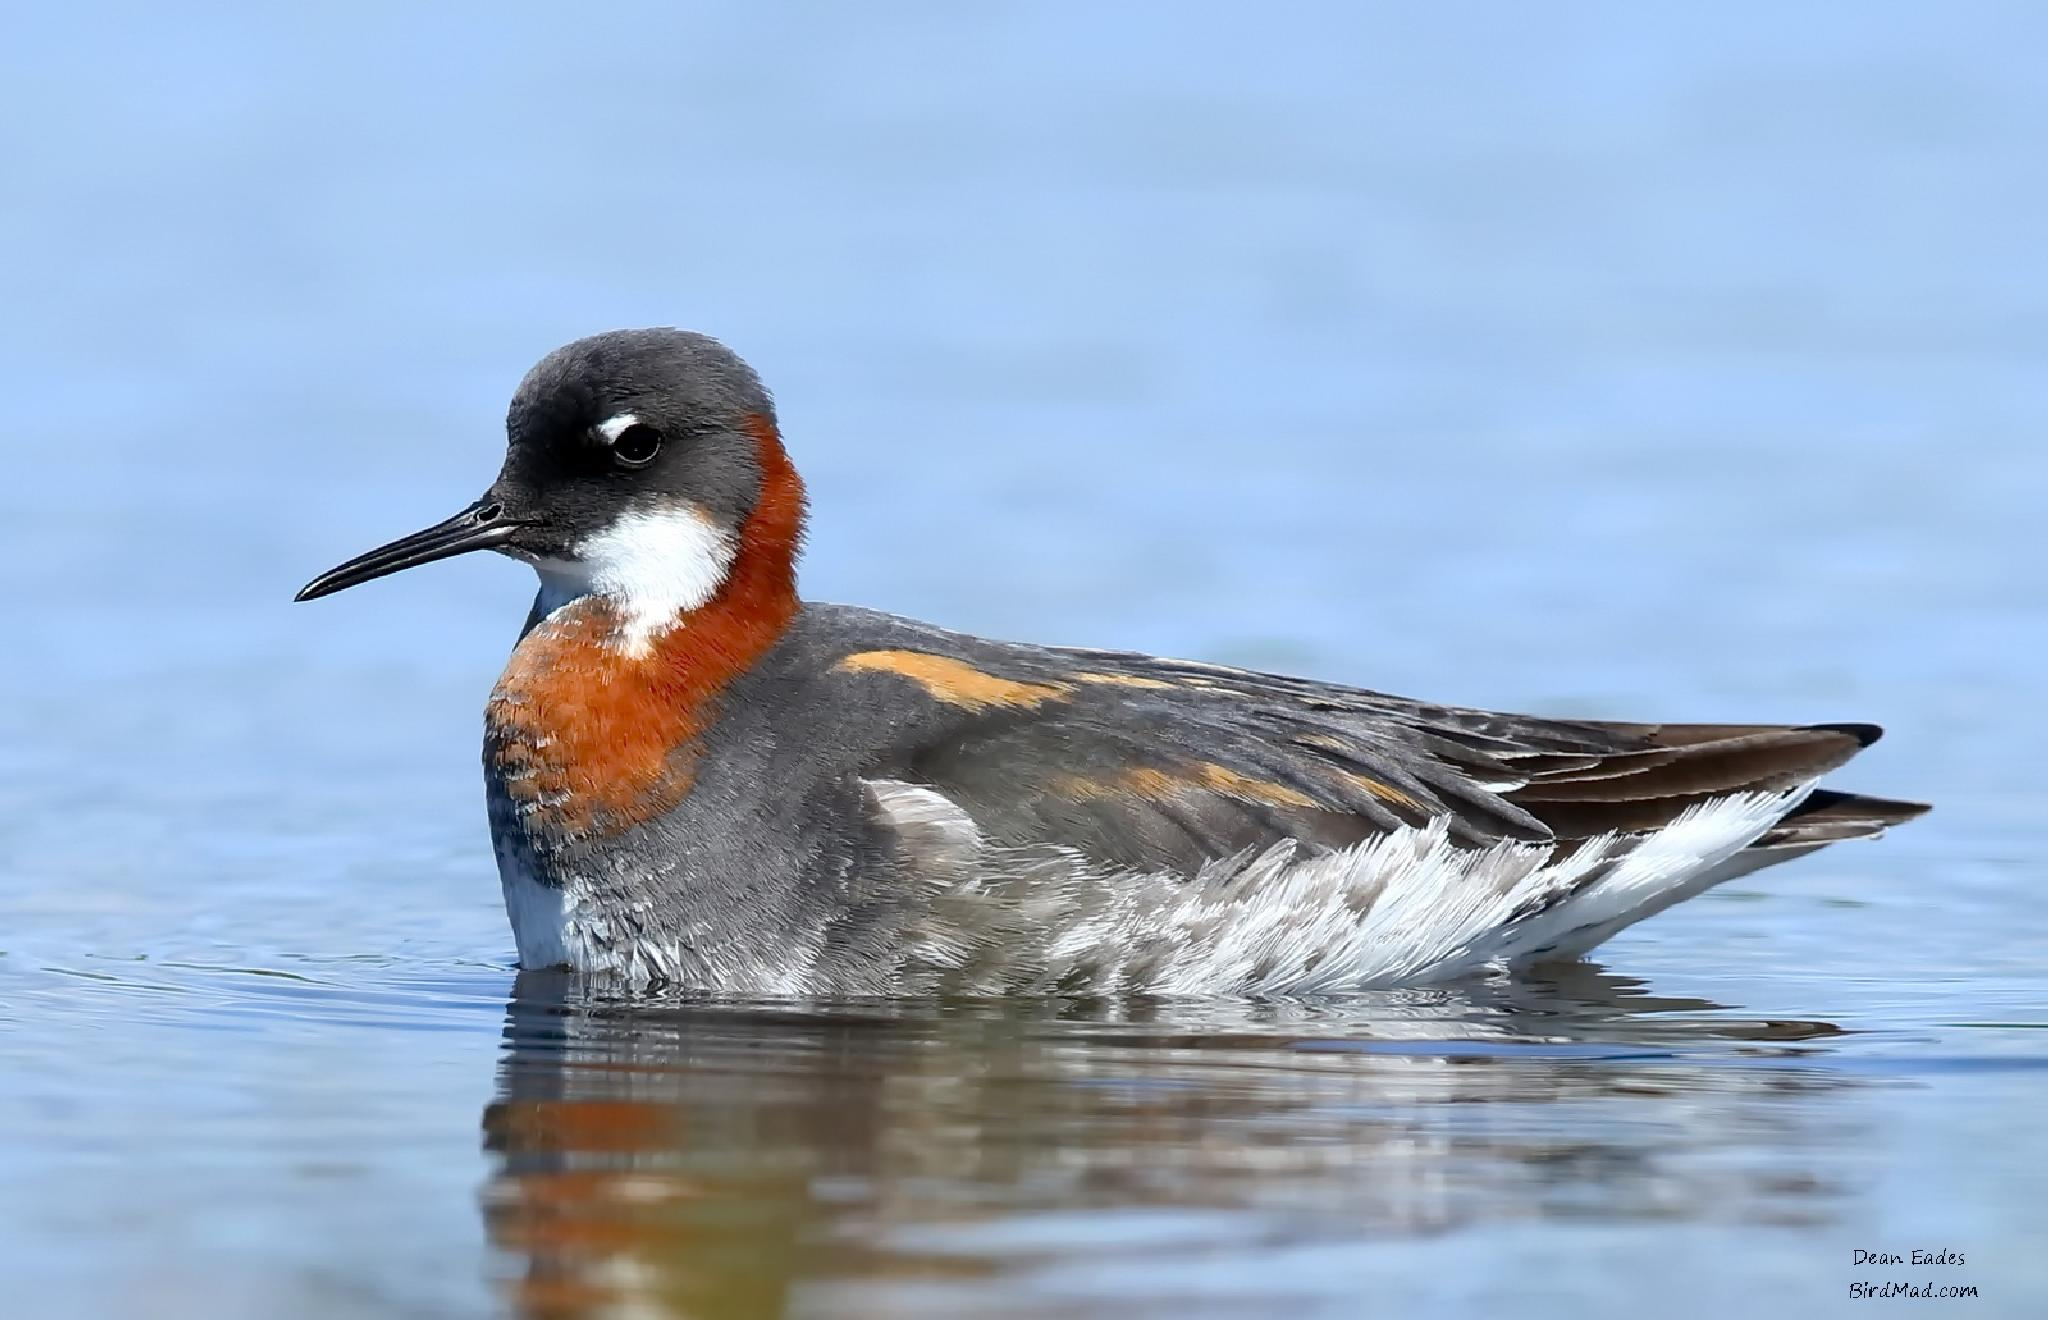 RED NECKED PHALAROPE by deaneades